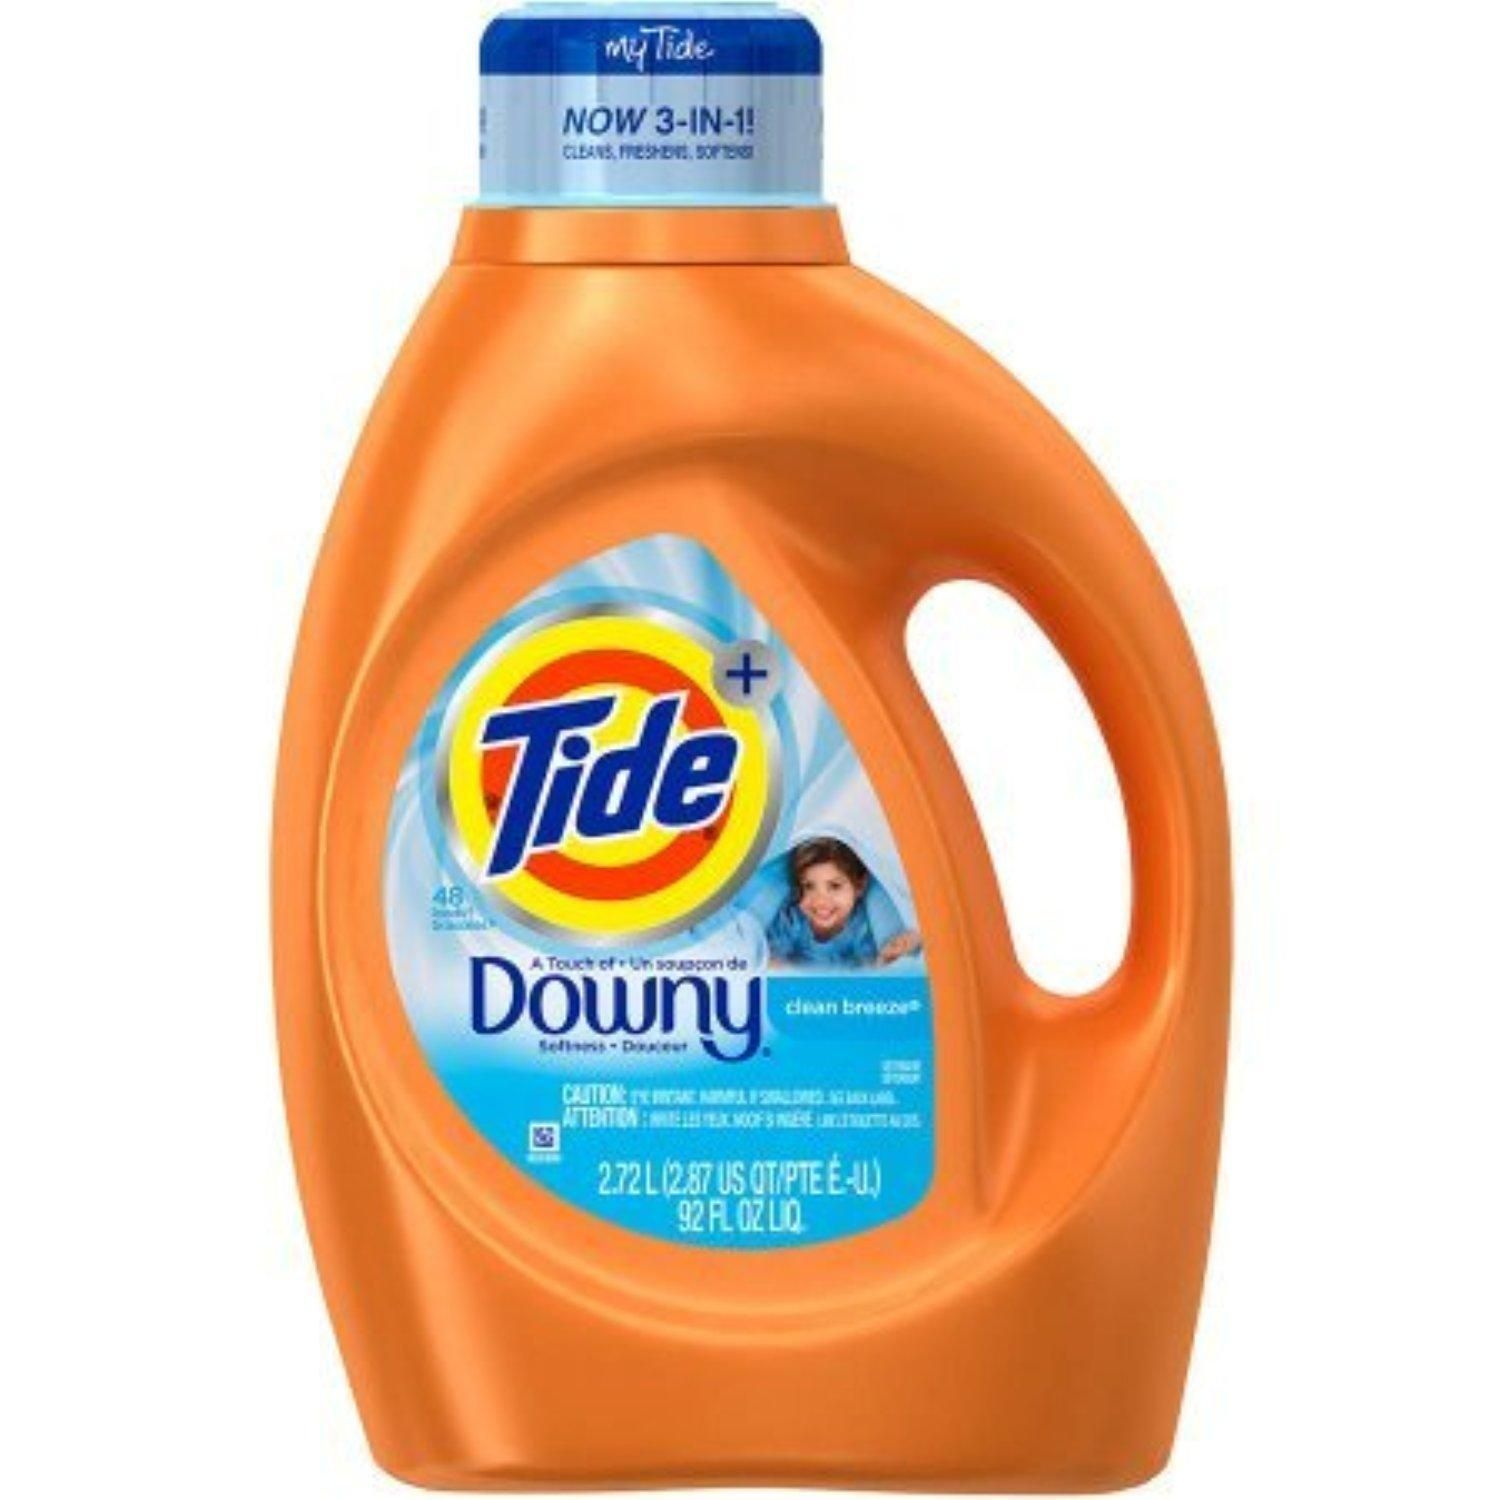 Tide Plus 3700087459 Downy Clean Breeze Scent Liquid Laundry